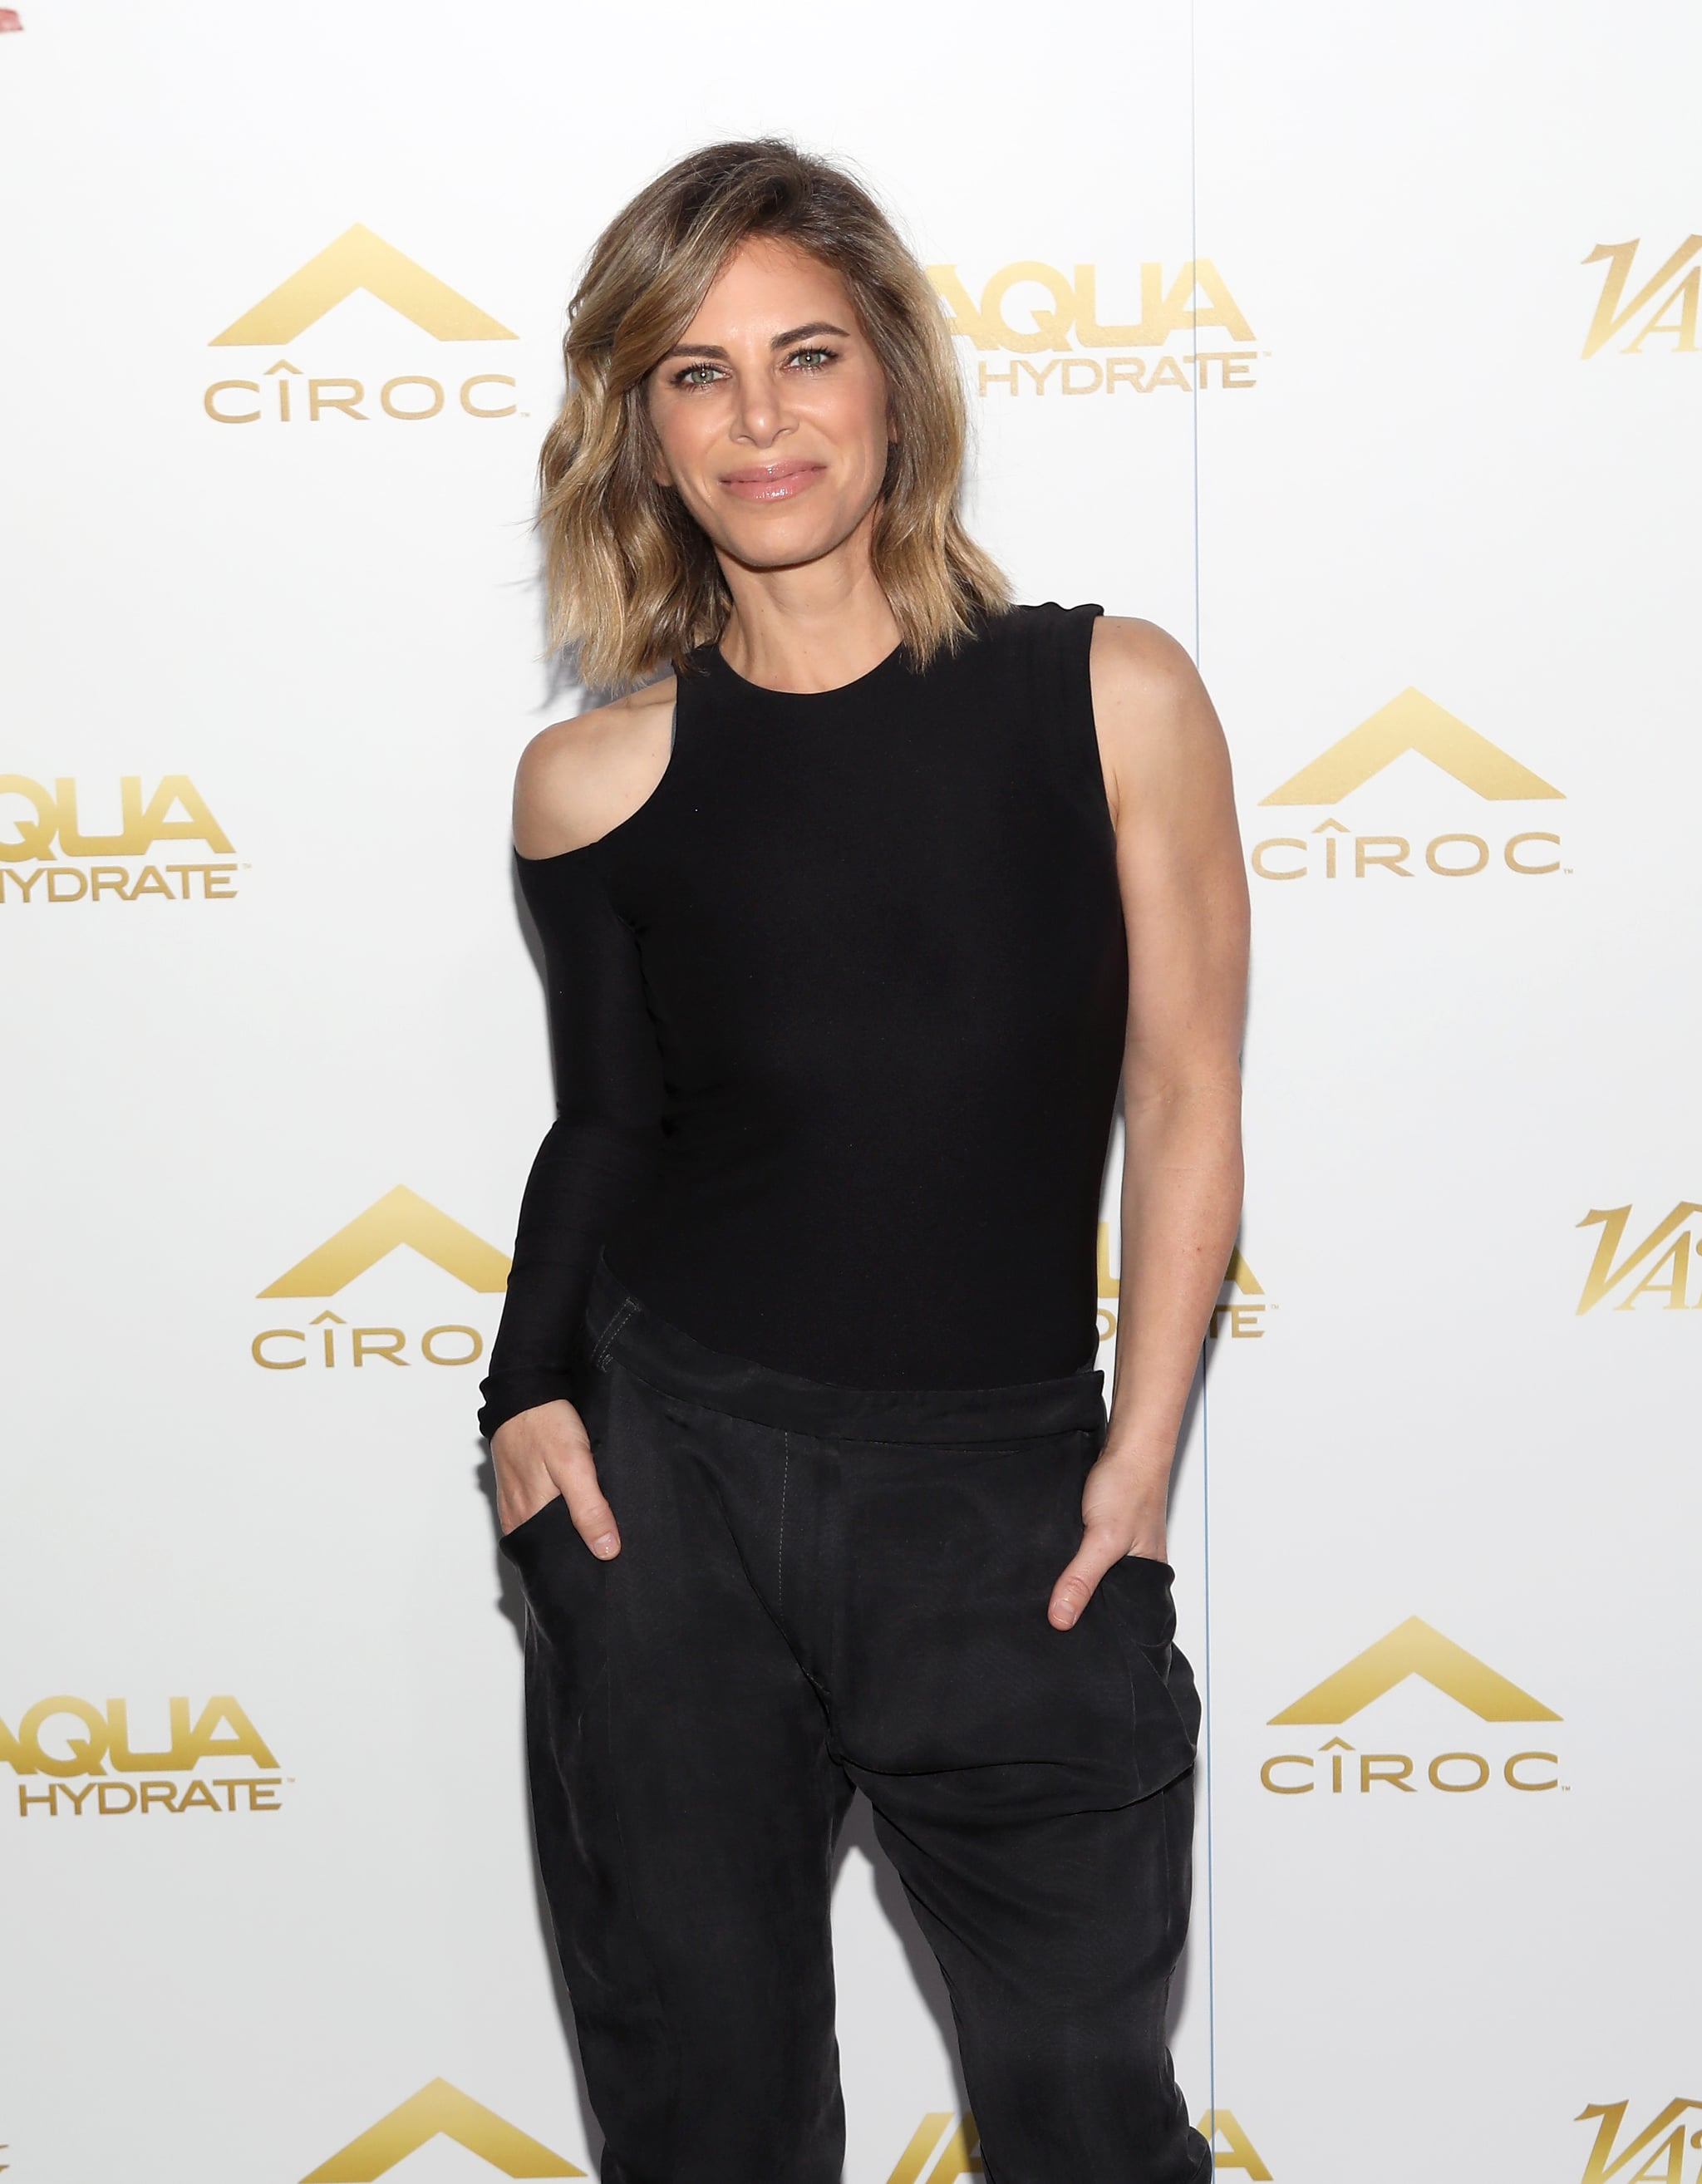 LOS ANGELES, CA - MAY 21:  Jillian Michaels attends the CIROC Empowered Women's Brunch at the W Hollywood on May 21, 2018 in Los Angeles, California.  (Photo by Jerritt Clark/Getty Images for CIROC)